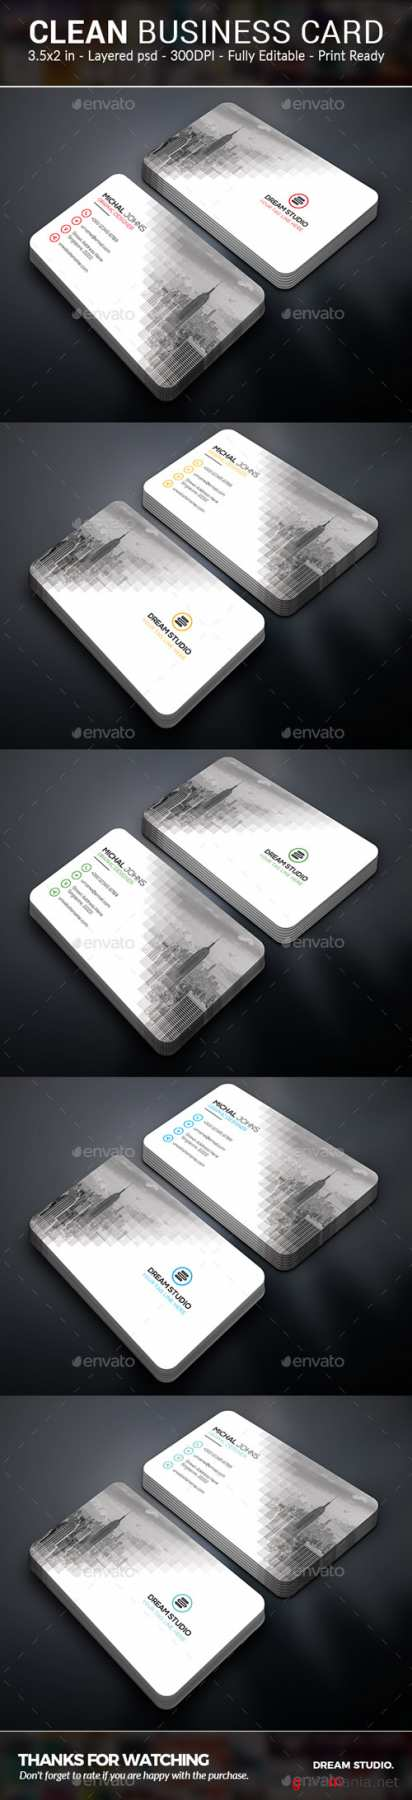 Business Cards 19779894